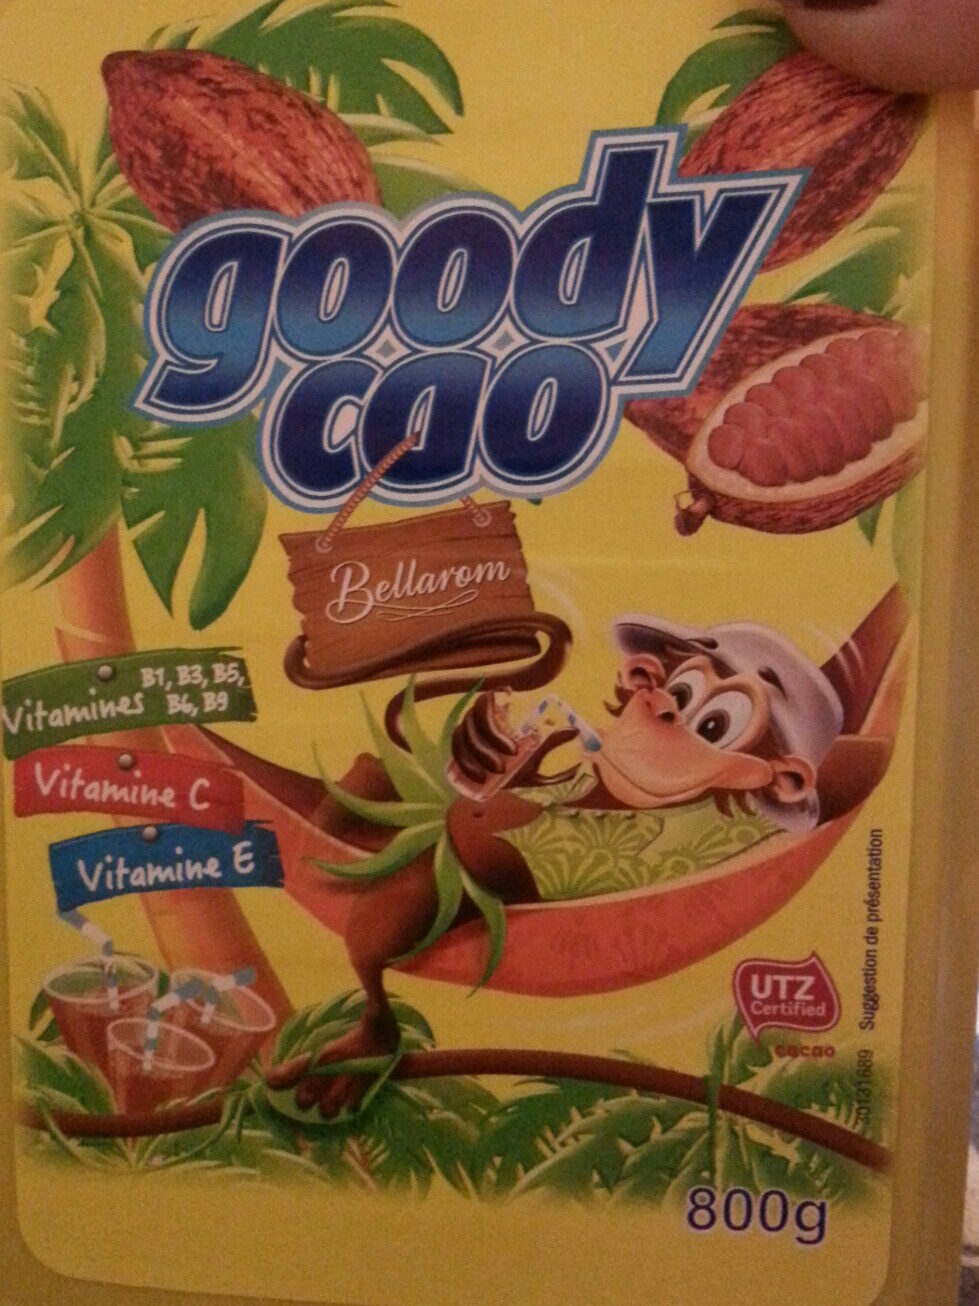 goody cao - Product